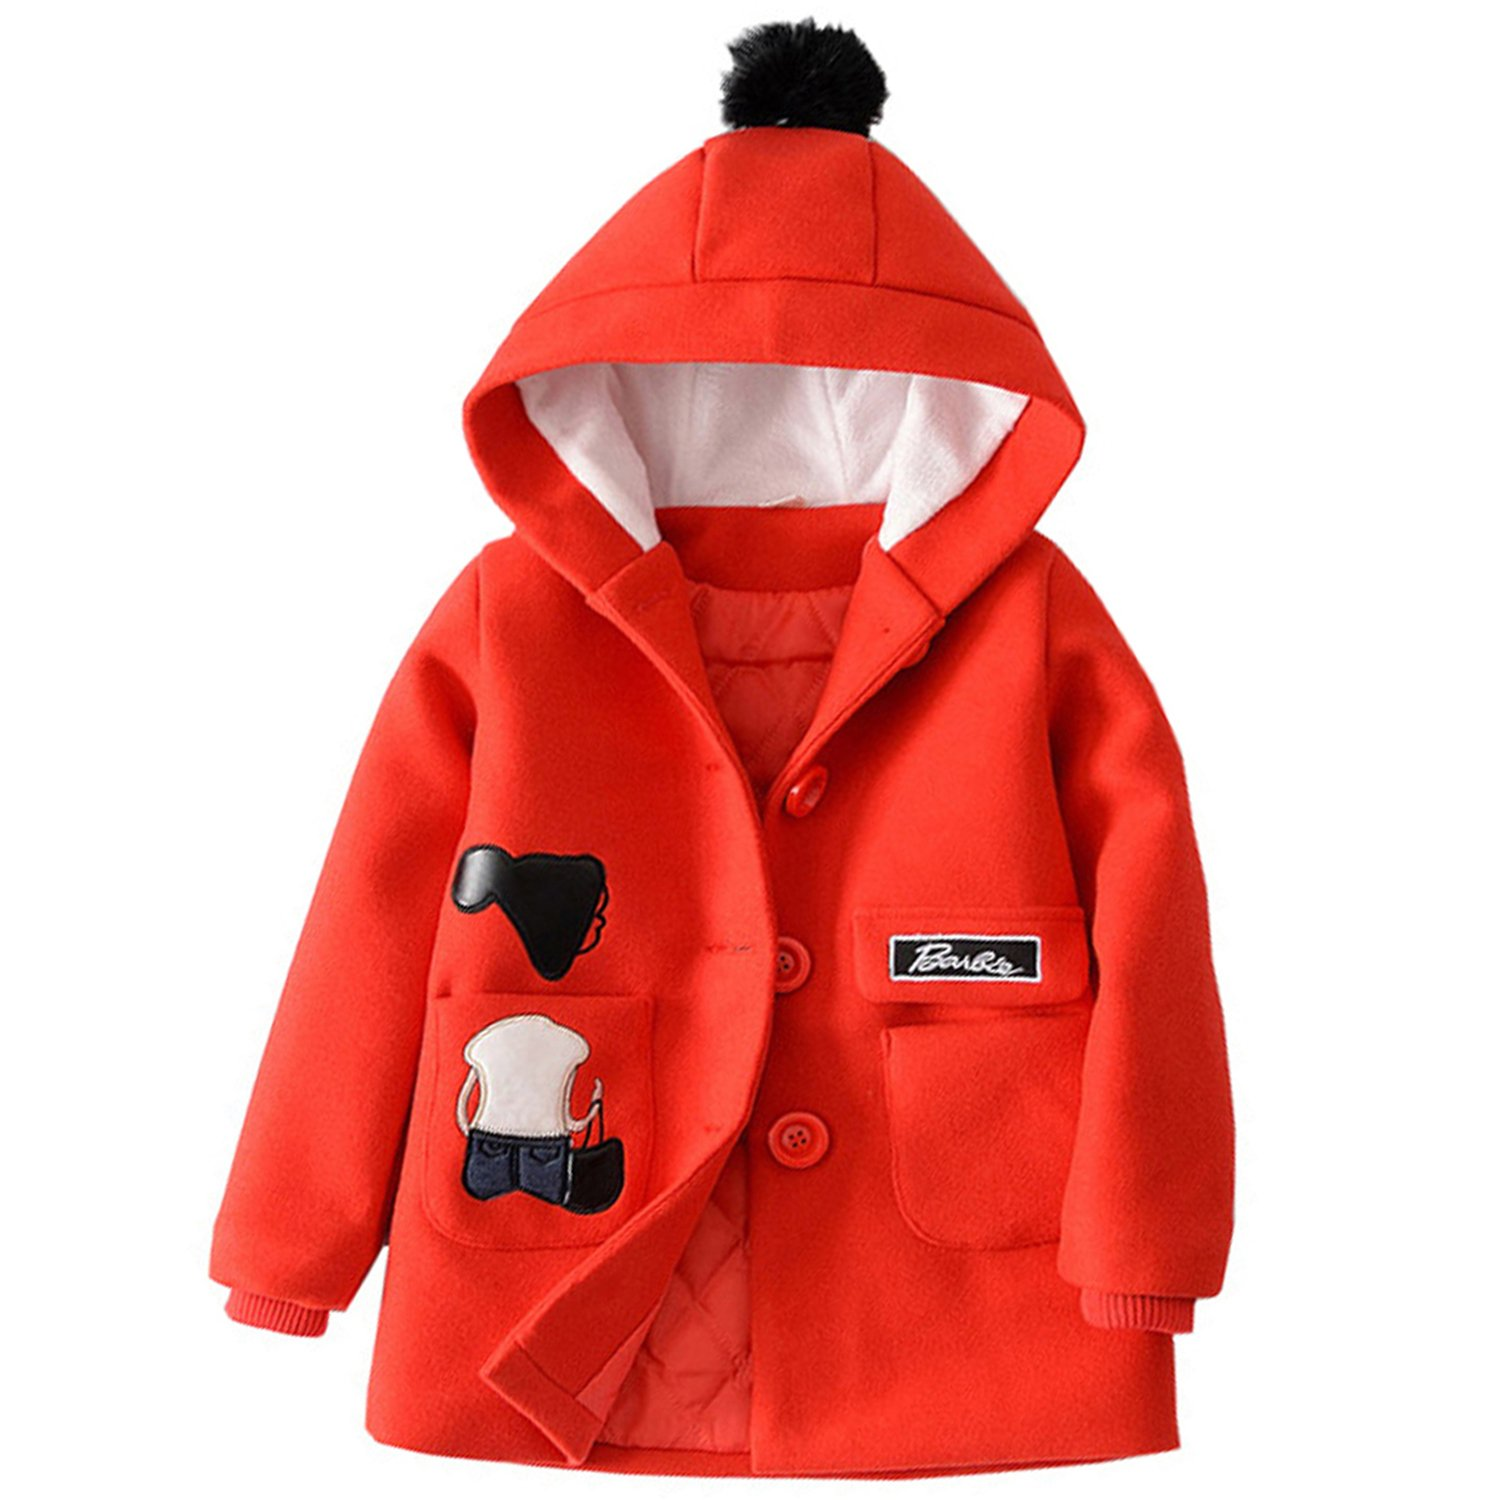 Euno Winter Girls' Fashion Thickening Coats and Hooded Coats Red R120